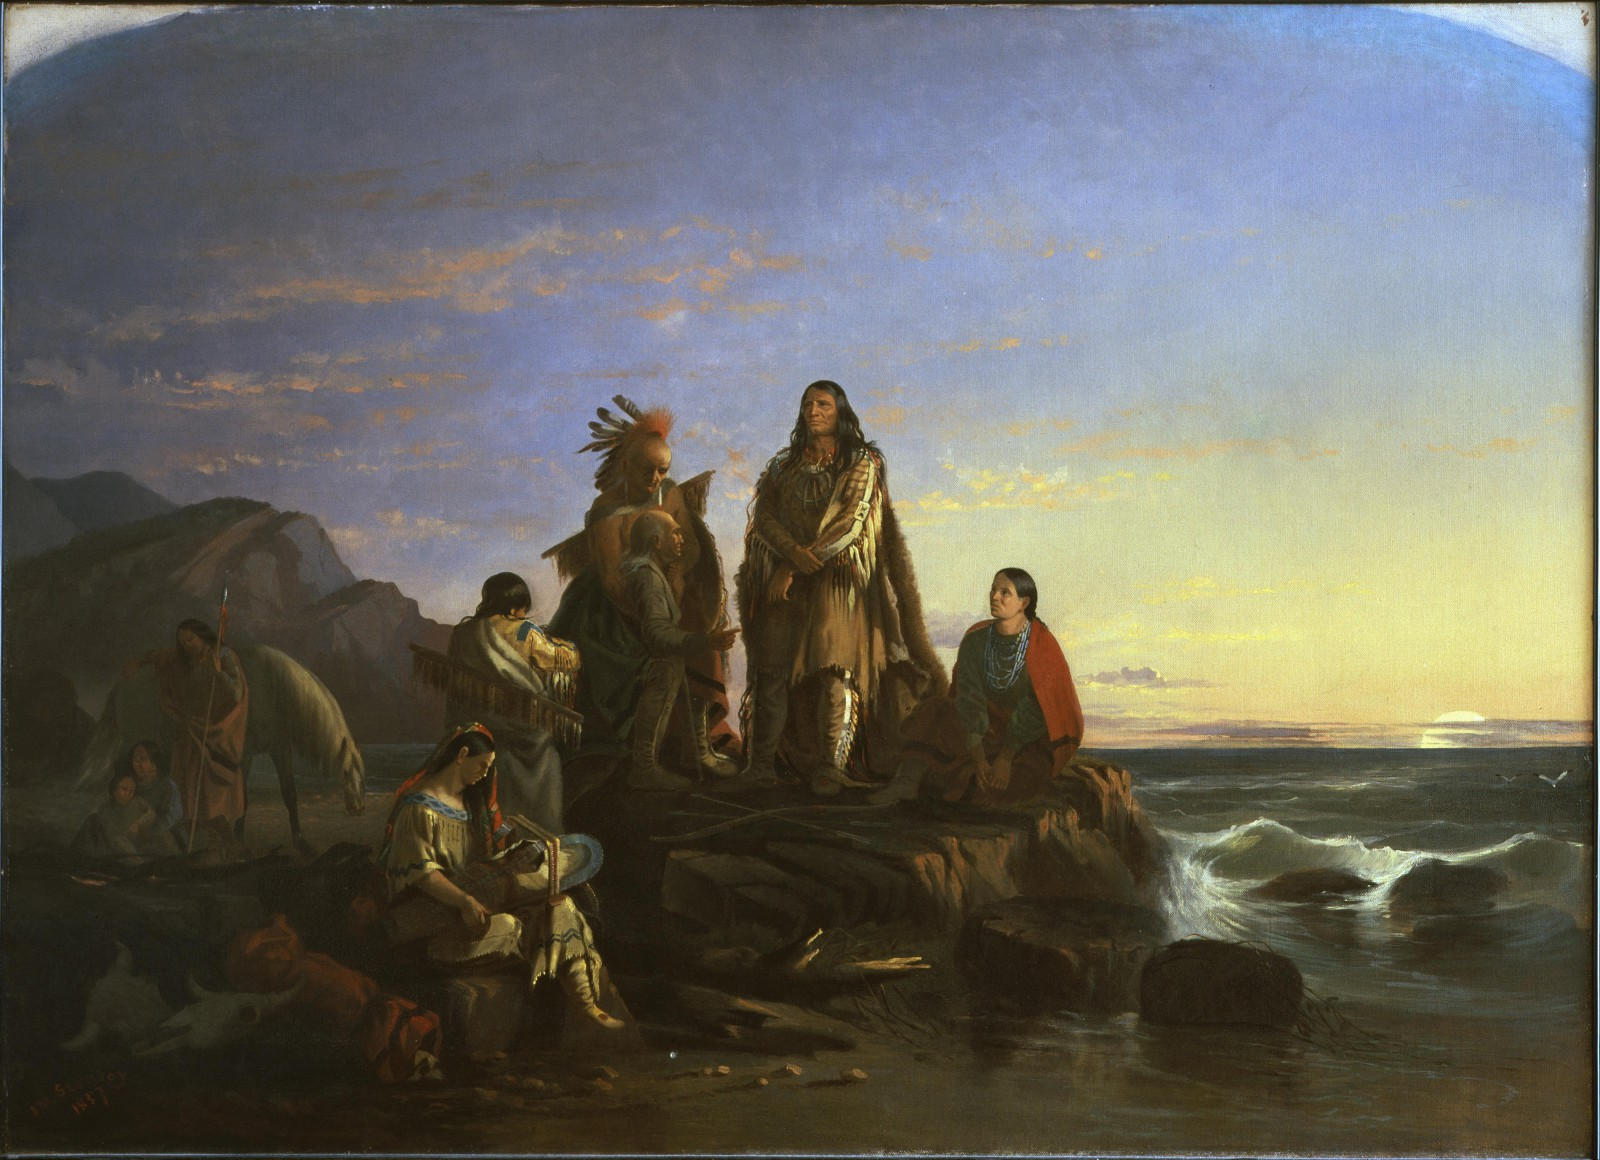 """John Mix Stanley (1814 - 1872). """"The Last of Their Race,"""" 1857. Oil on canvas. Museum purchase. 5.75"""